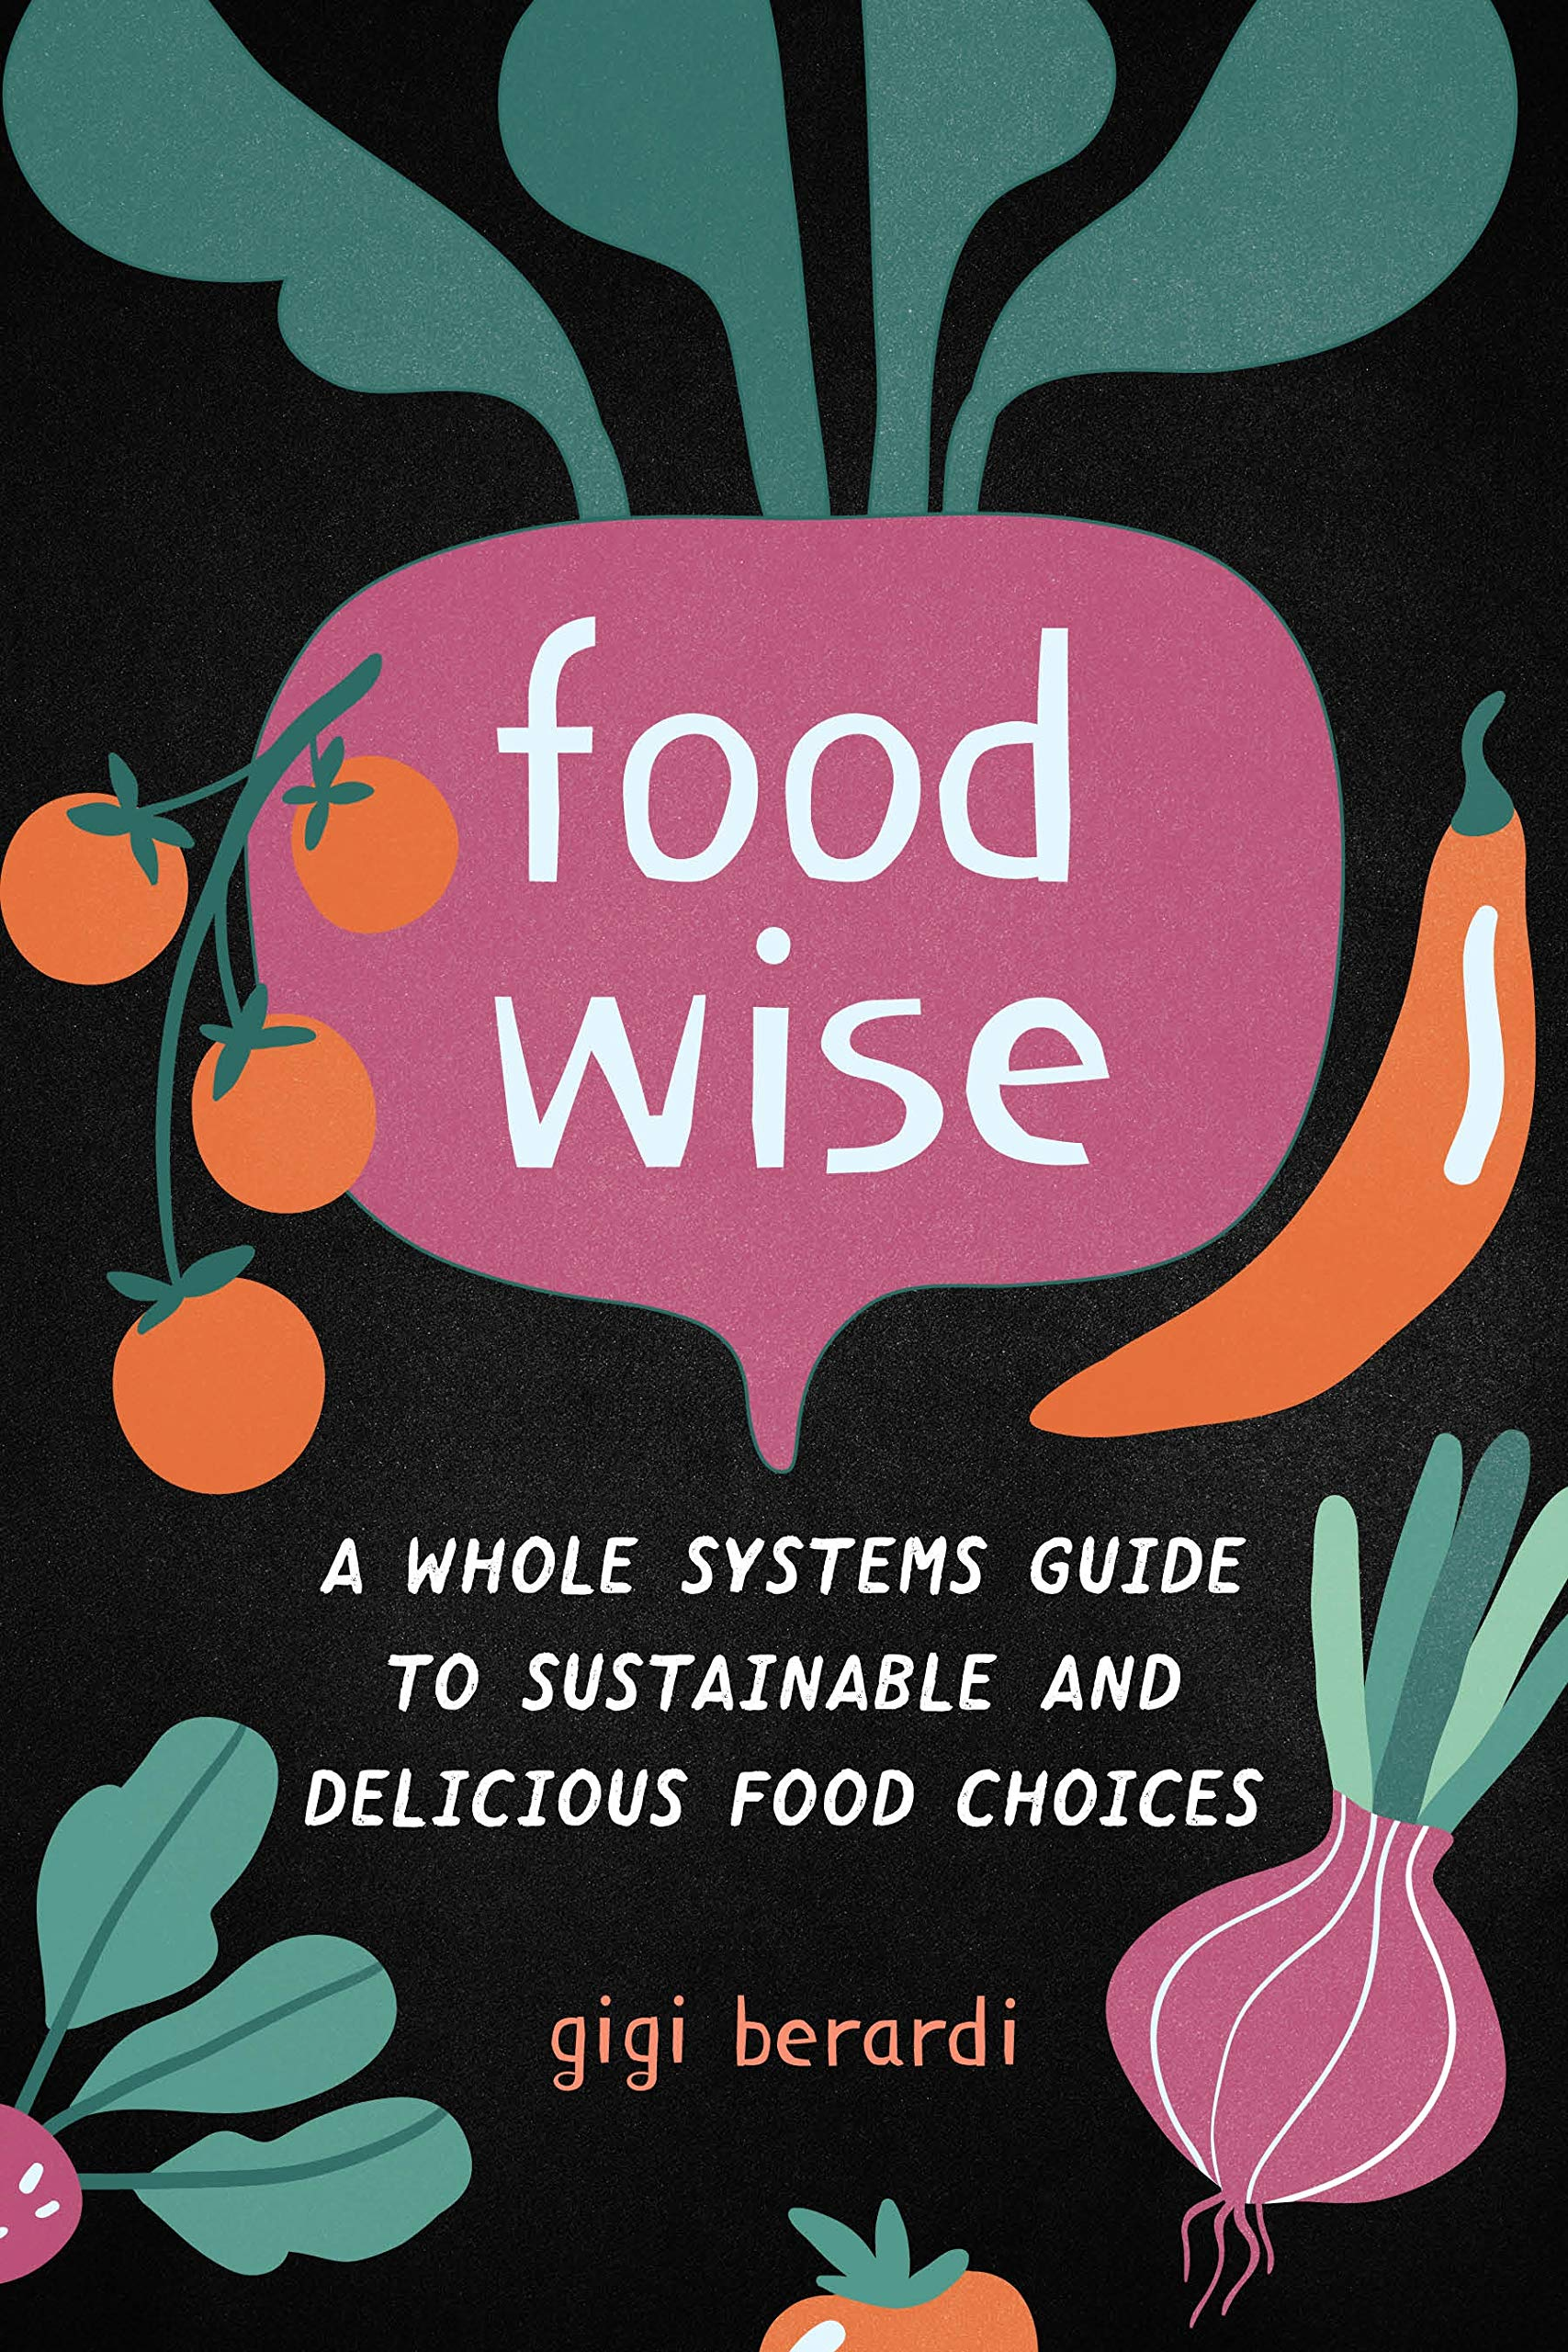 FoodWISE cover shows title and author surrounded by cartoon veggies